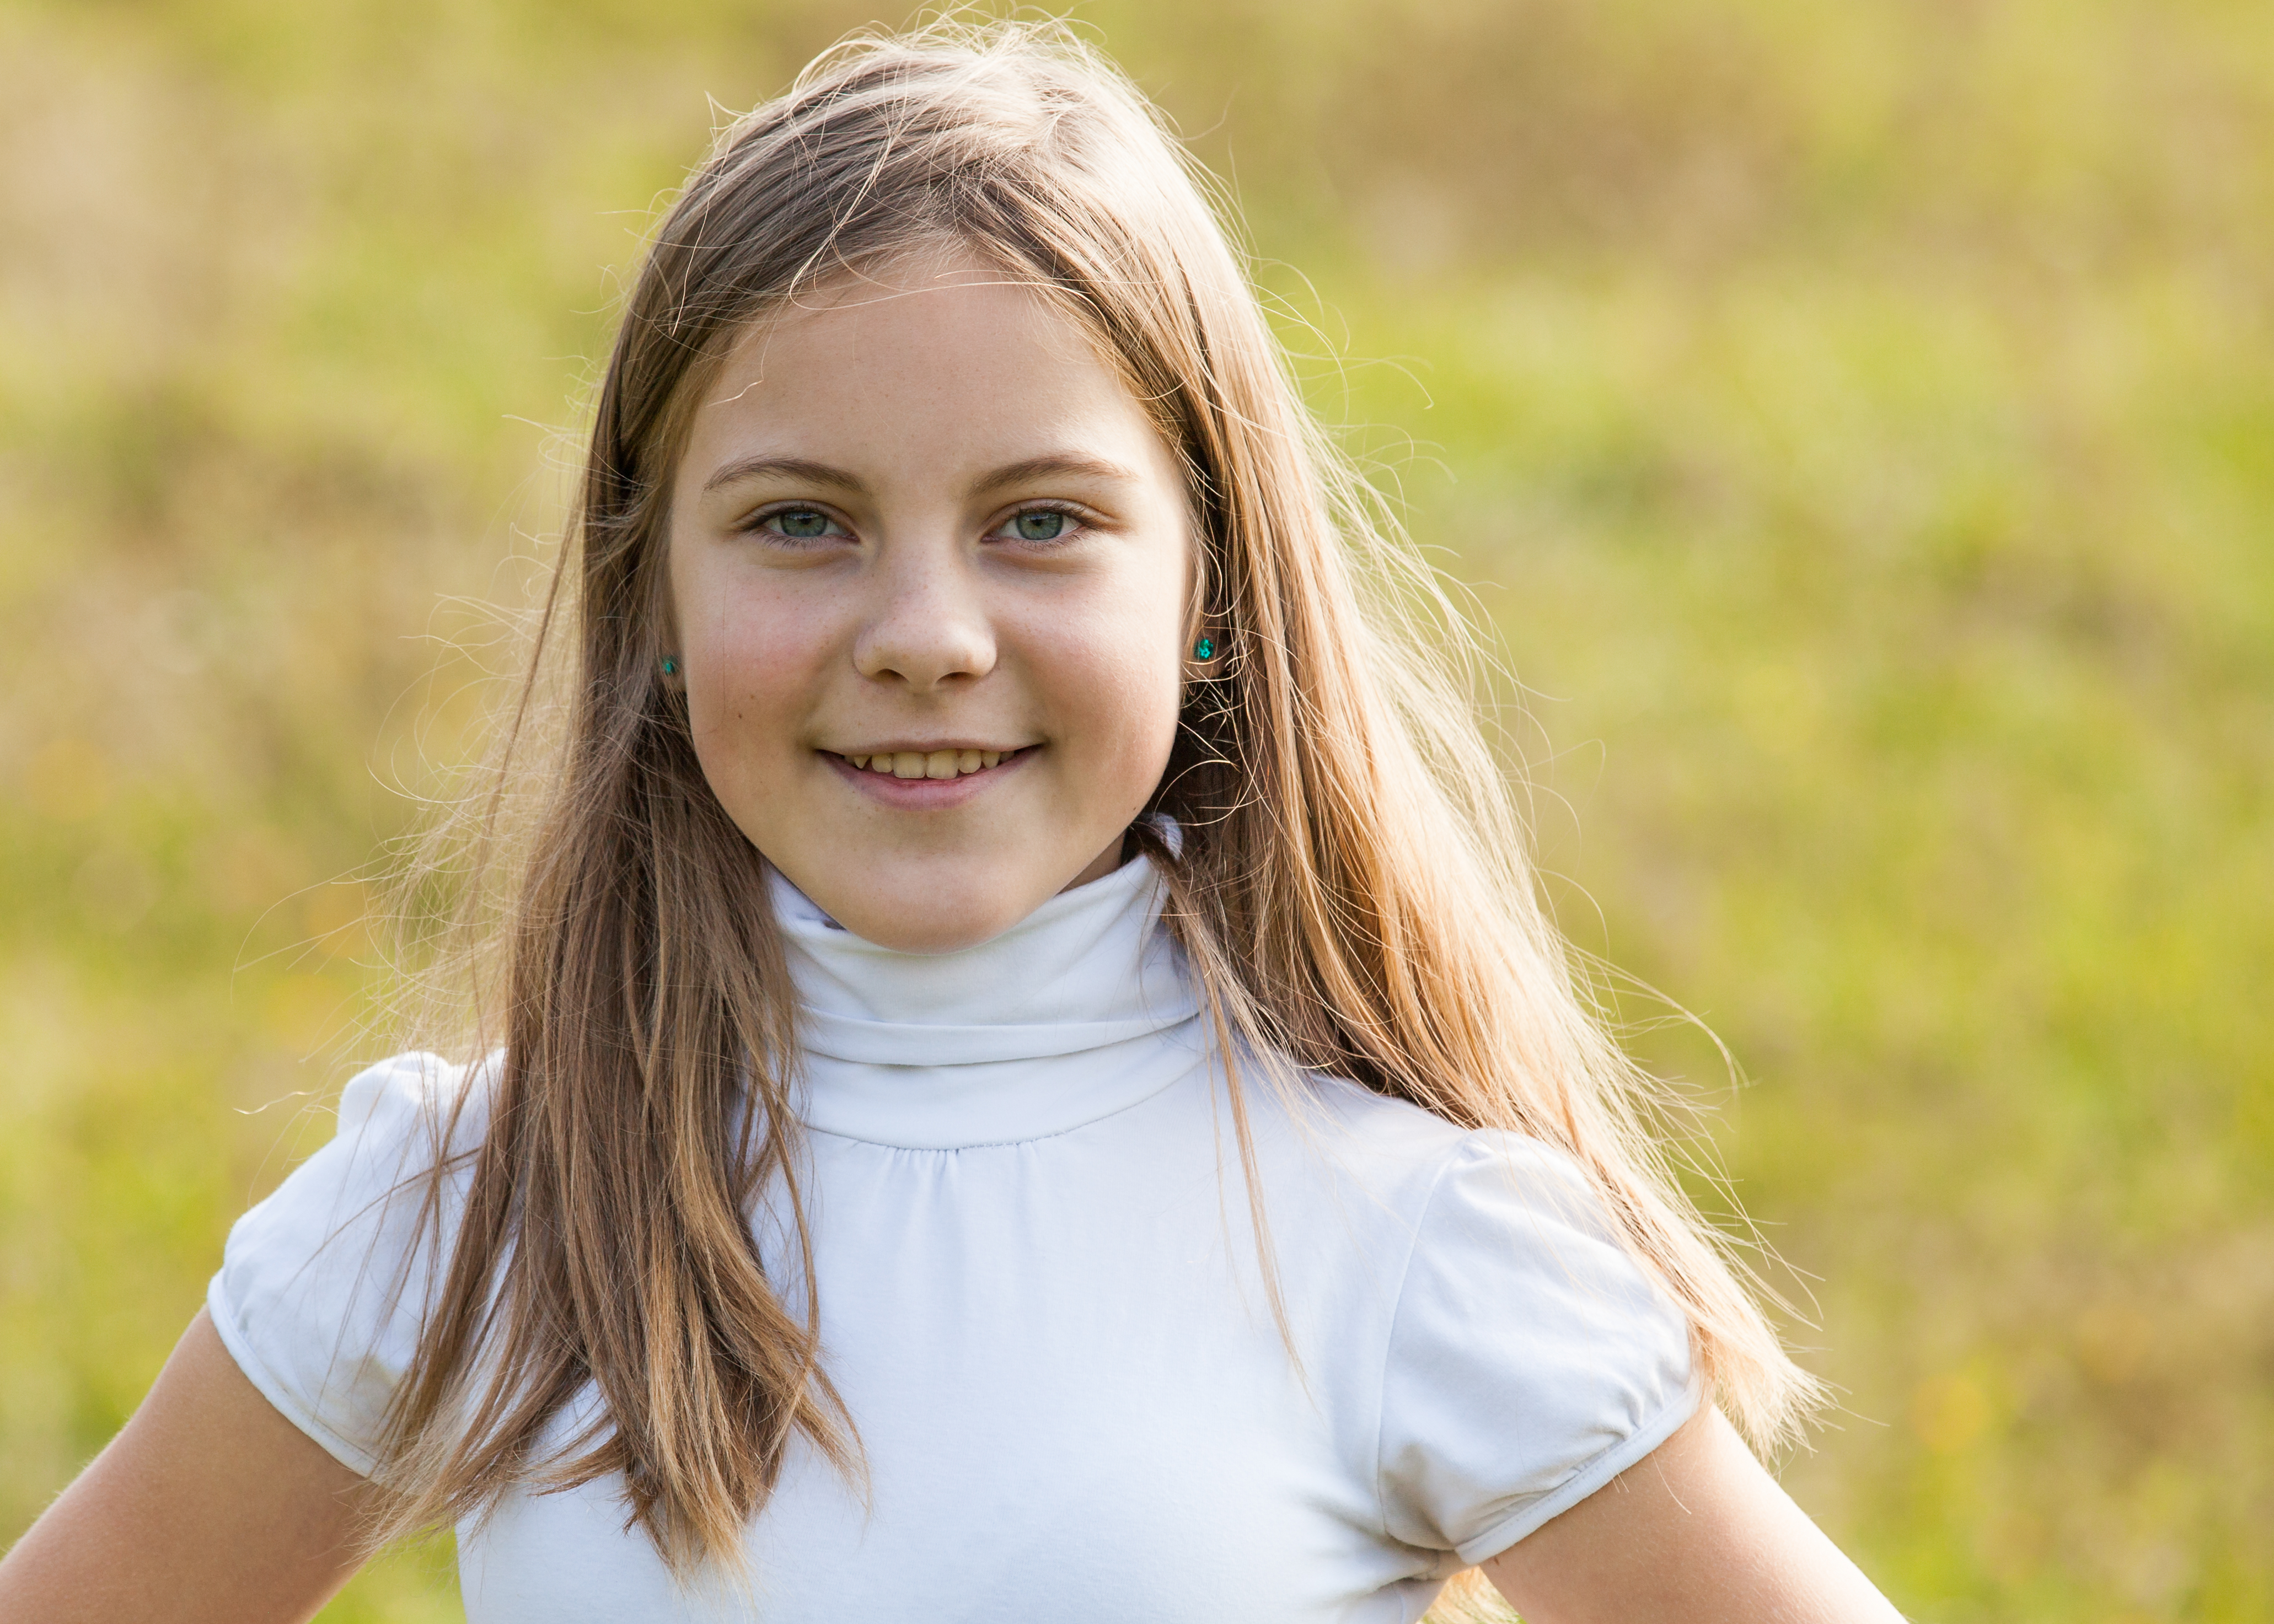 an amazingly beautiful young Catholic girl photographed in October 2014, picture 56